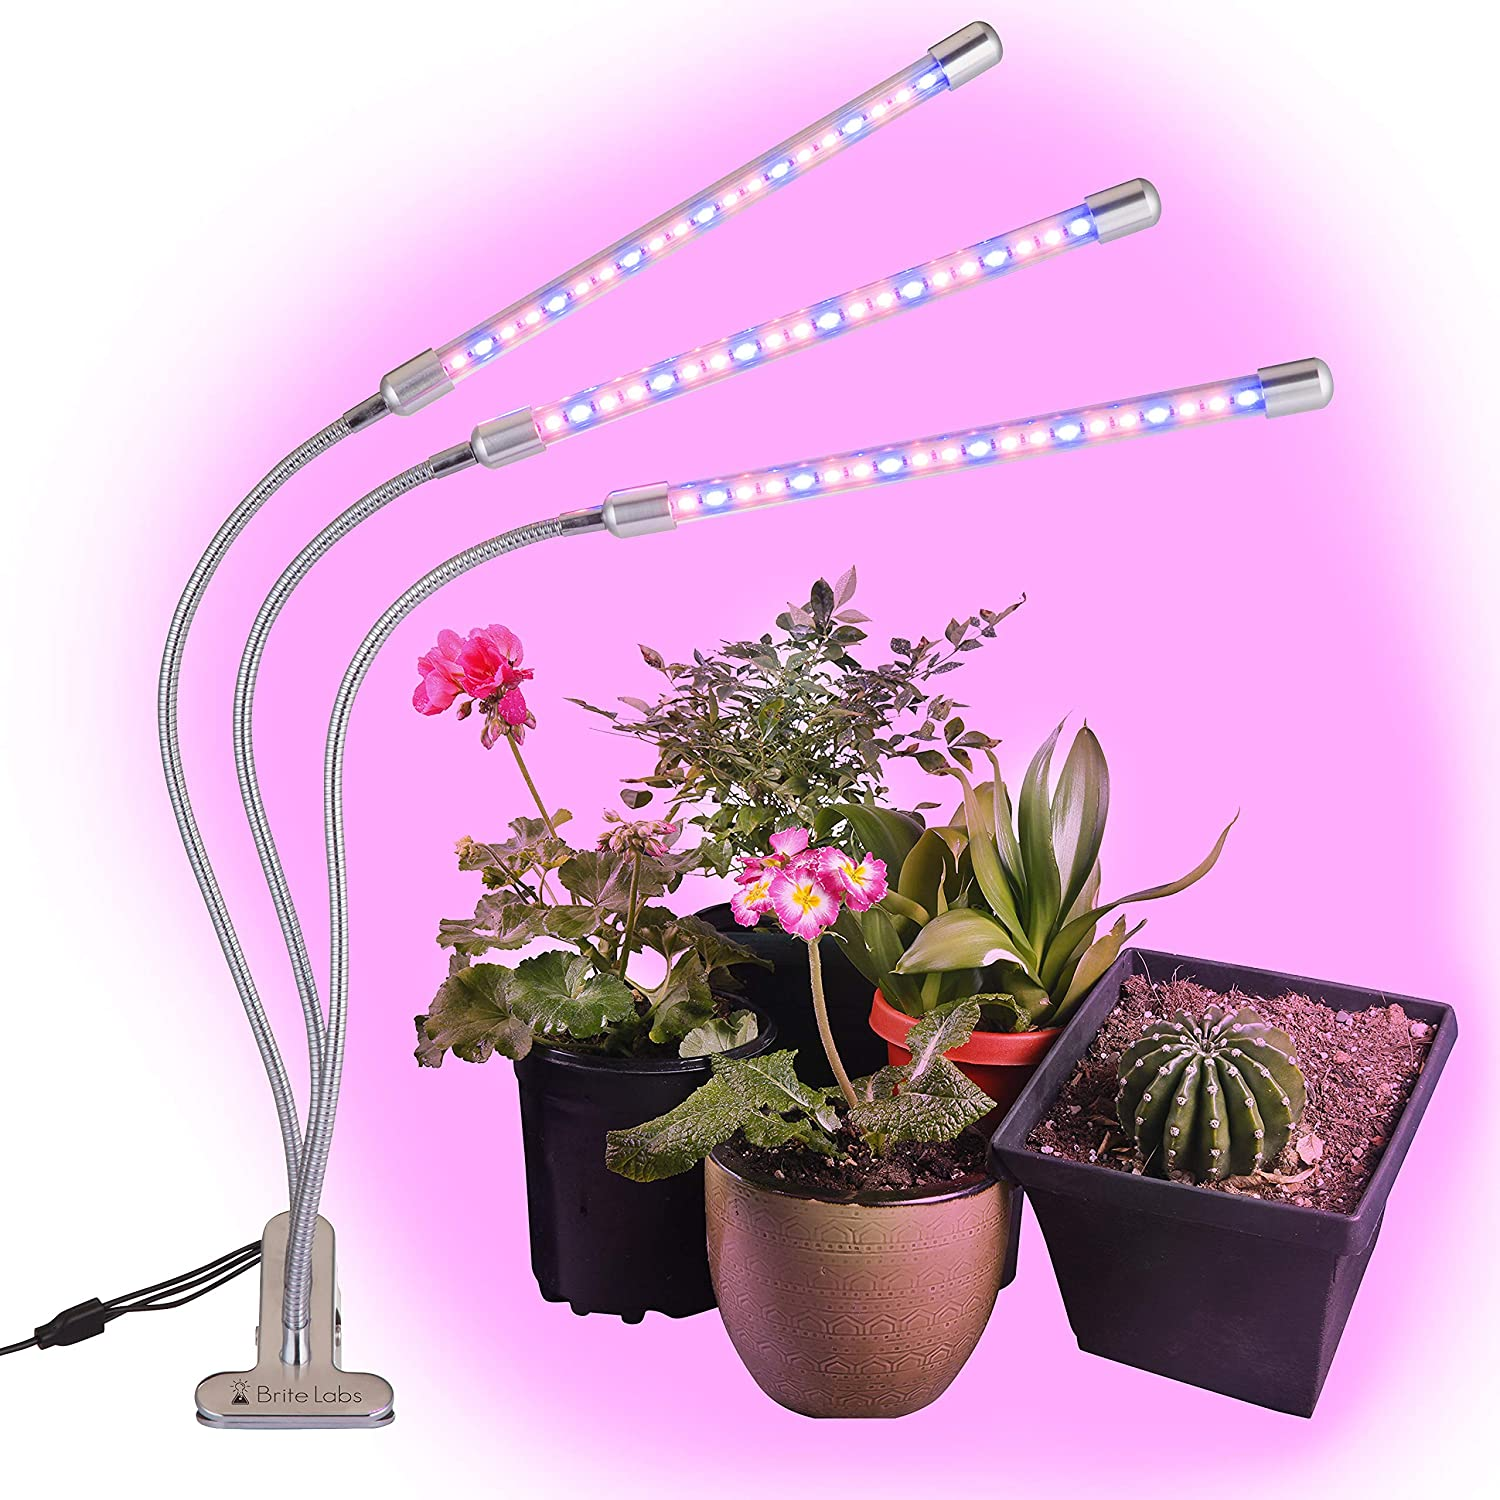 BriteLabs LED Grow Lights for Indoor Plants, Triple Head Plant Growing Lamps with 60 Full Spectrum Bulbs, Improvised Timer Function Allows Auto On Off, Adjustable Gooseneck Arms with Desk Clamp